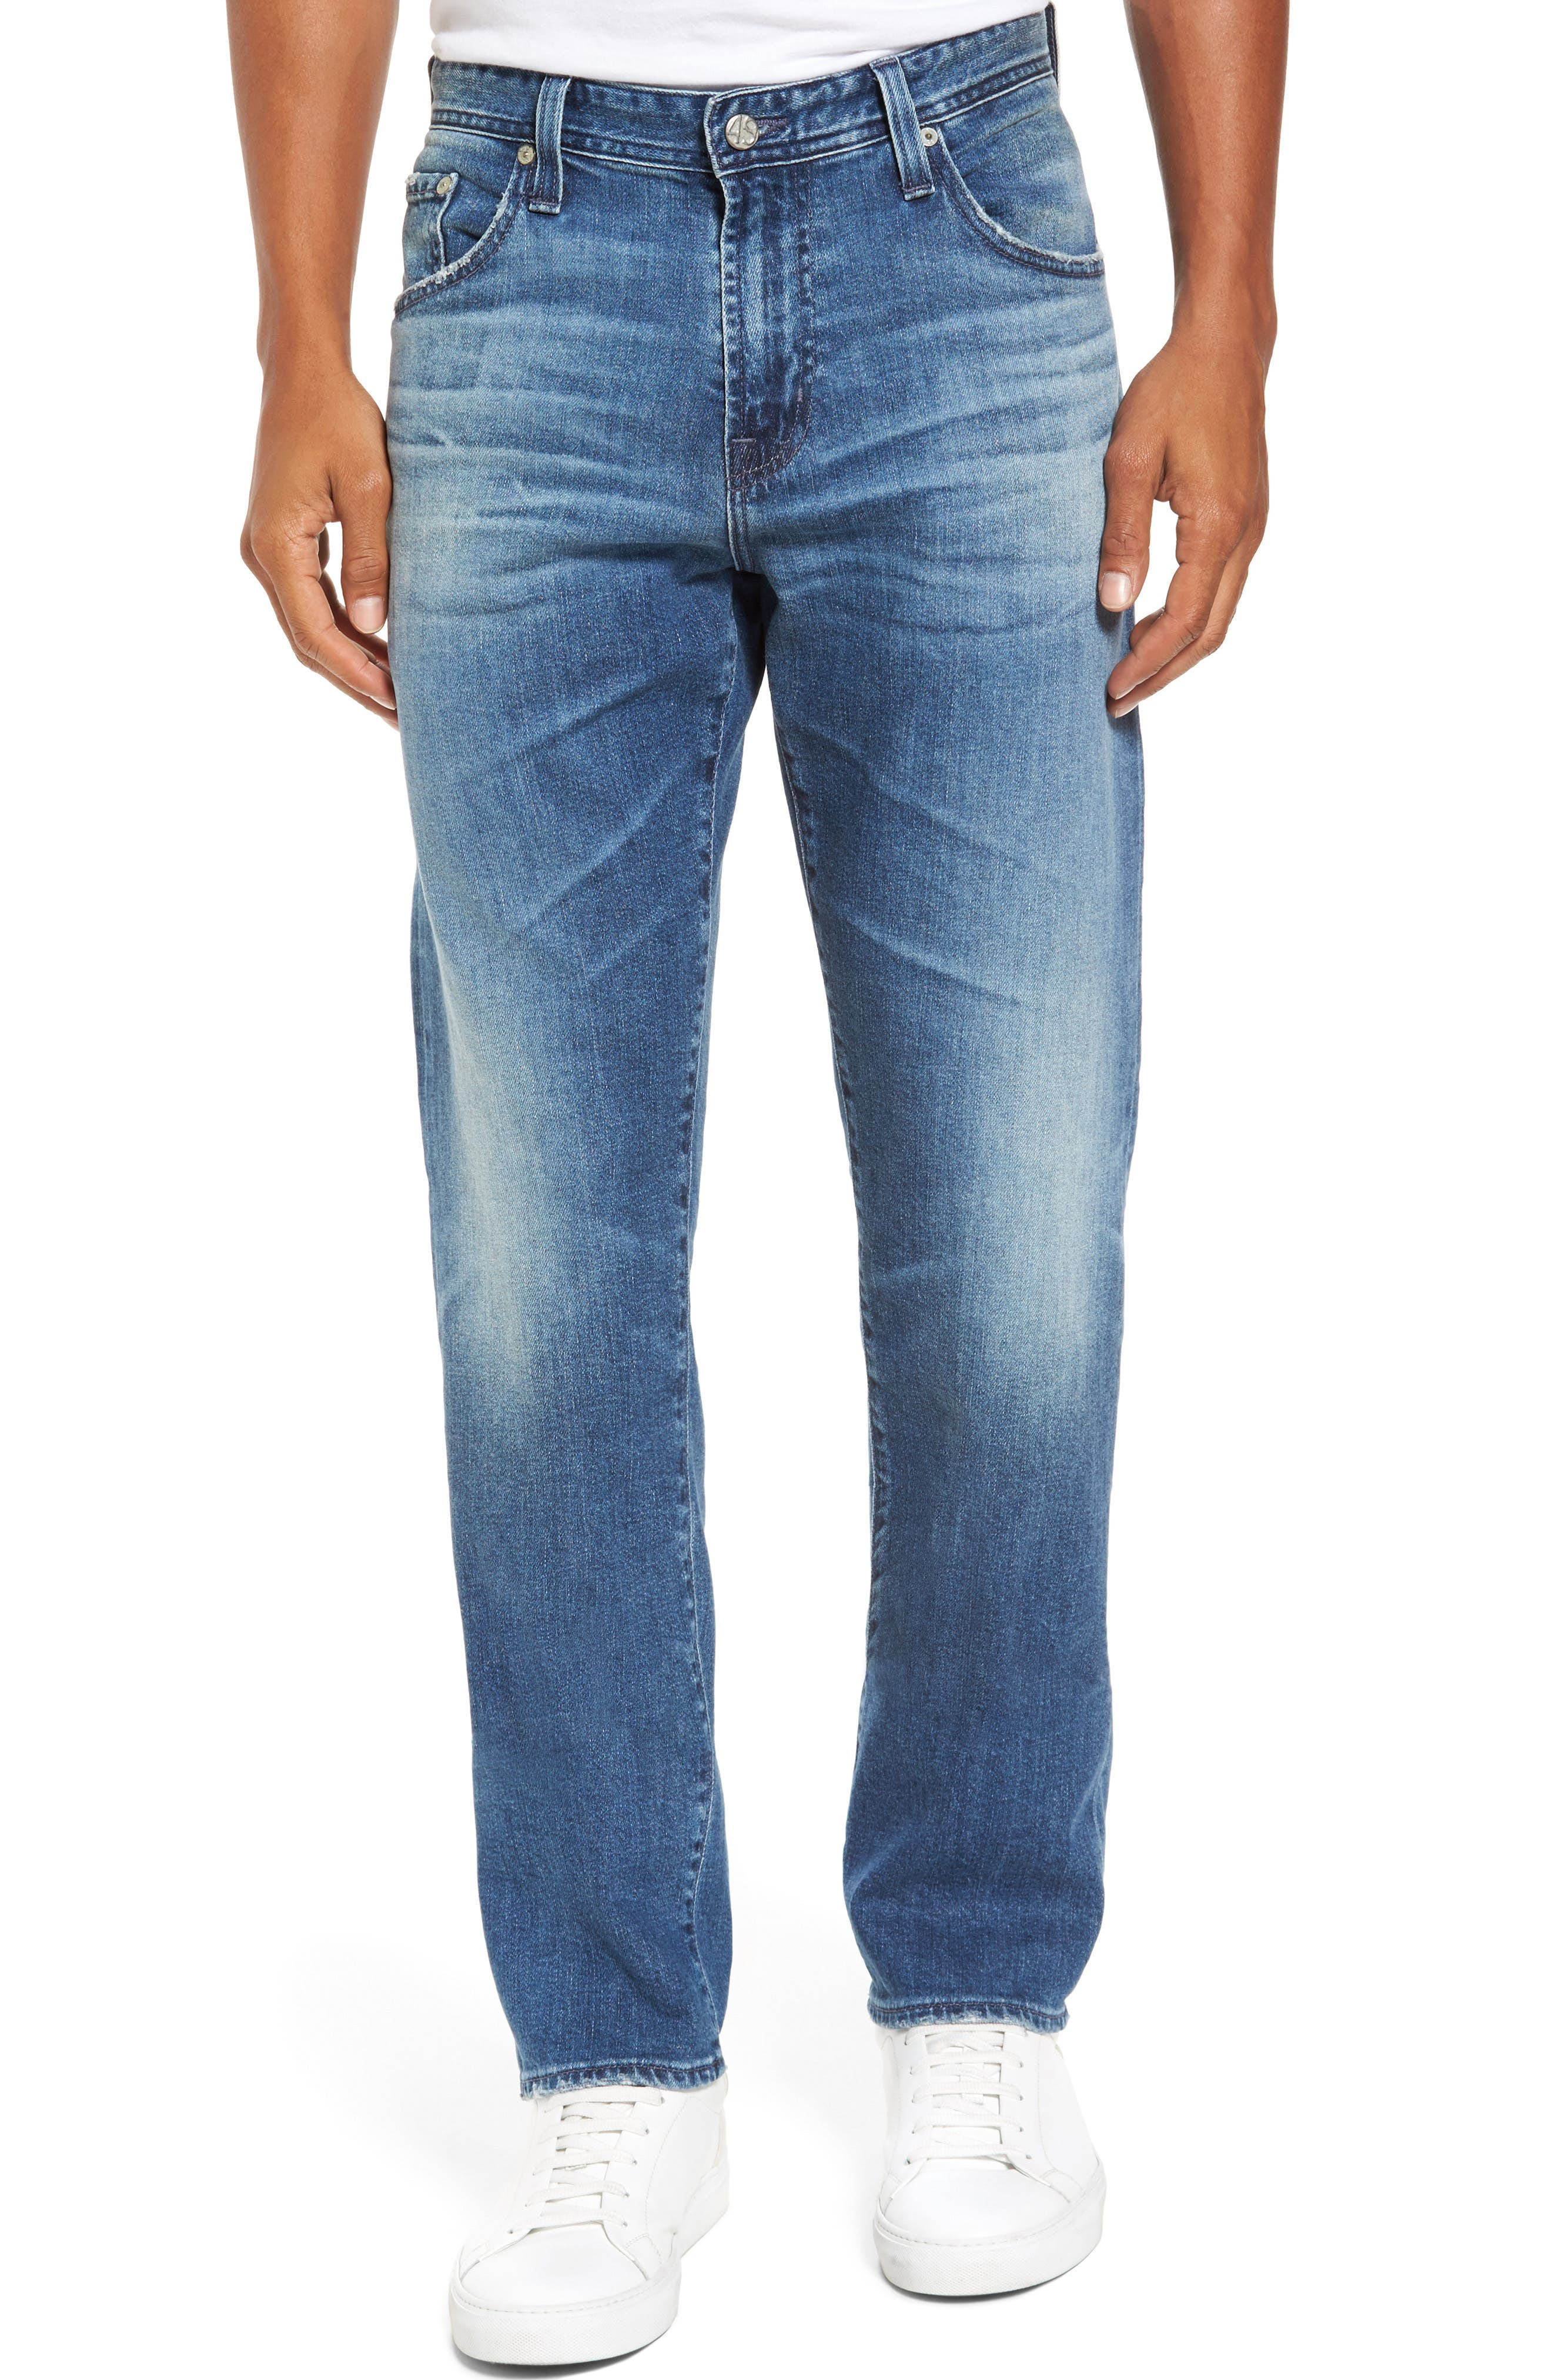 Ives Straight Fit Jeans,                         Main,                         color, 468